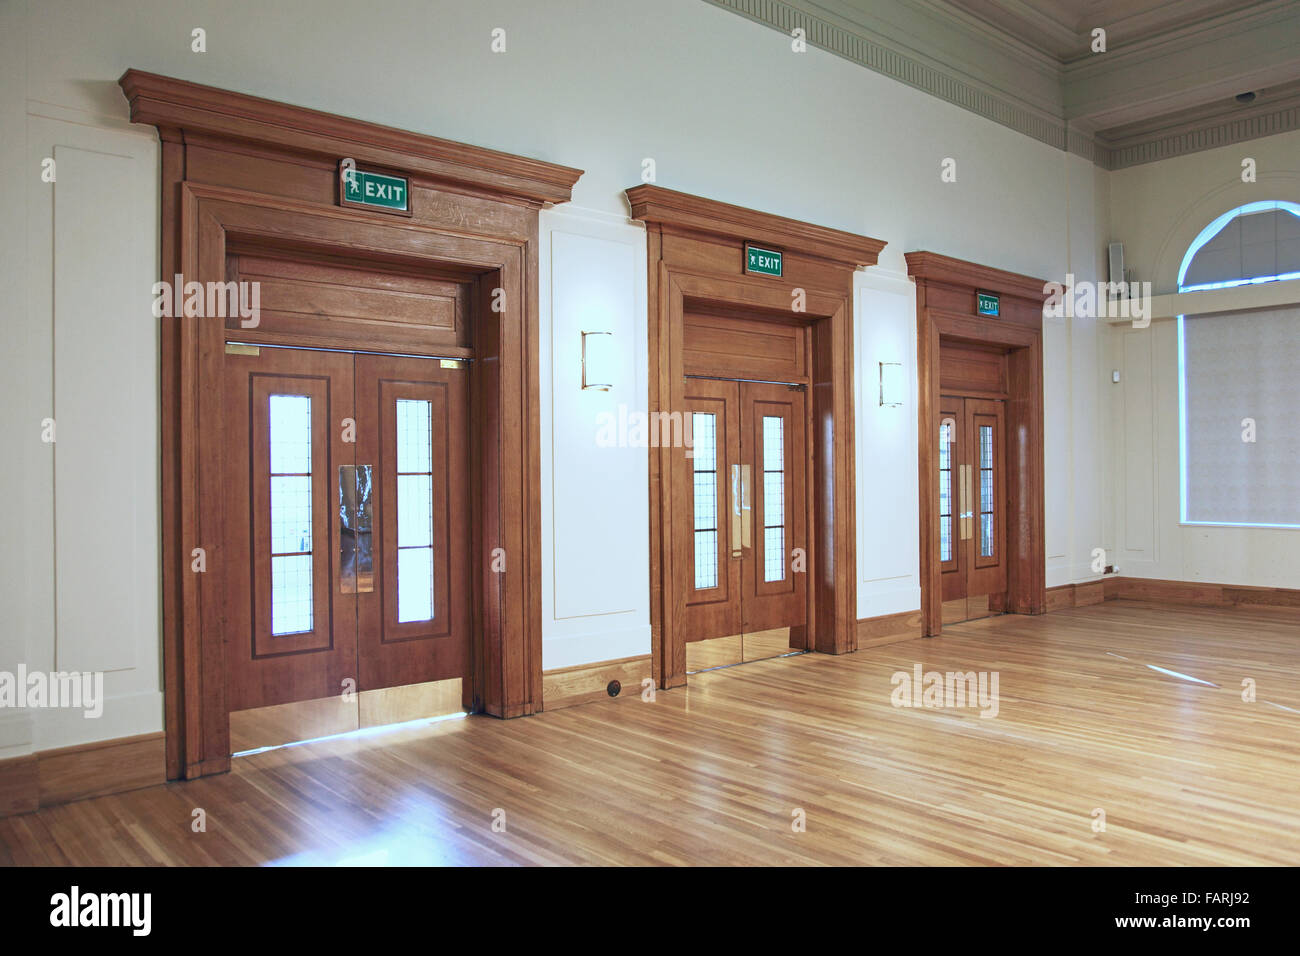 security beautiful ironmongery that fulhambrassonline determined architectural withstand interior shopping com banner online uk assault doors armed